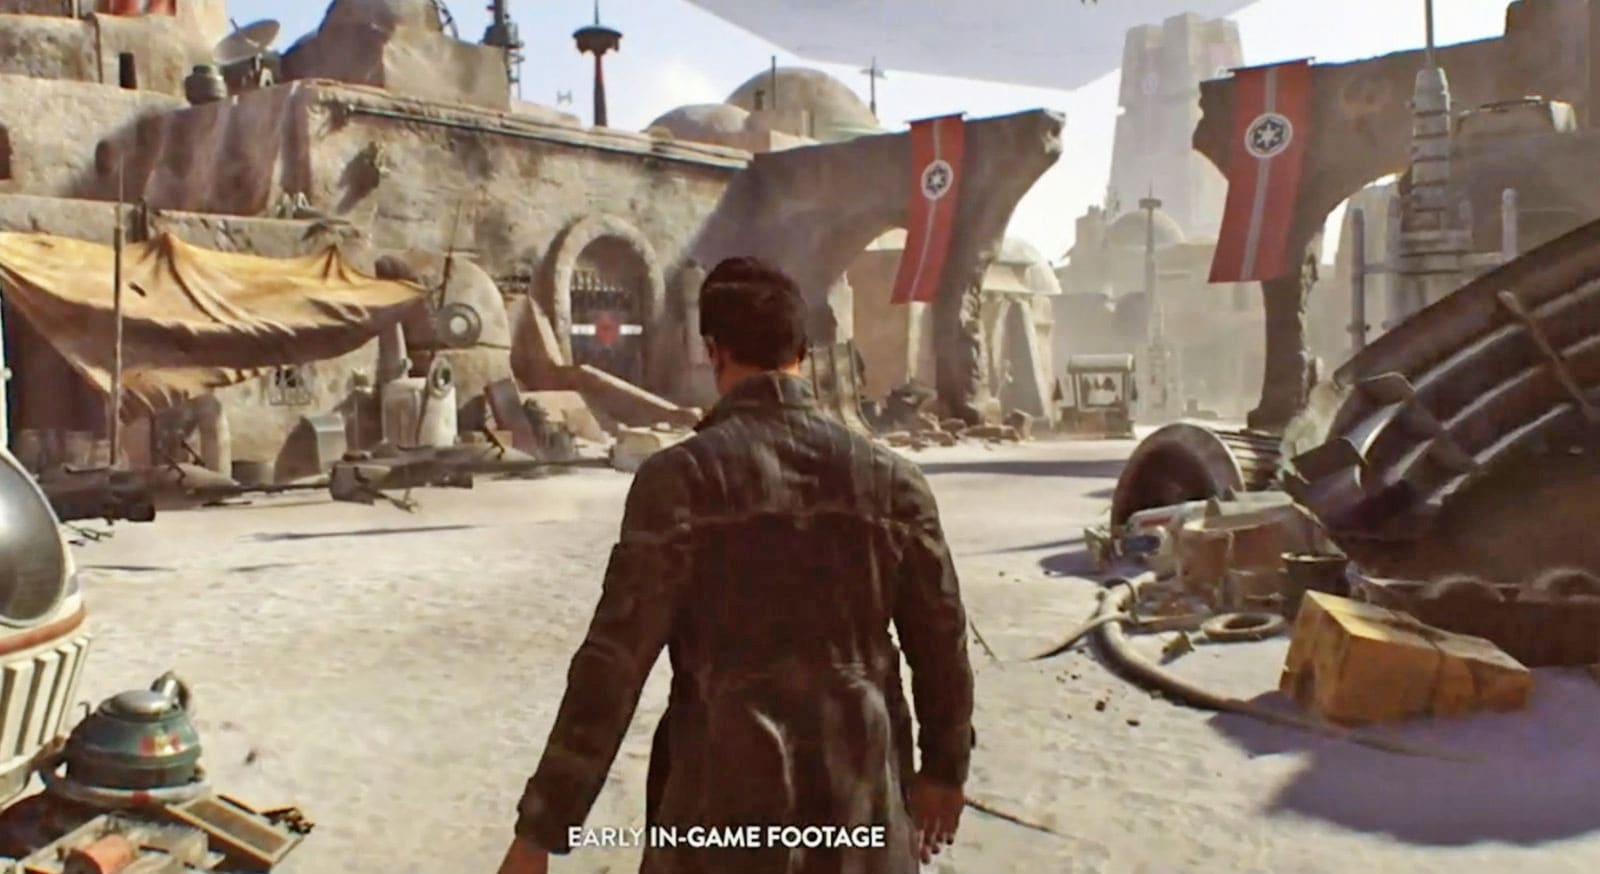 EA's open-world 'Star Wars' game is no more